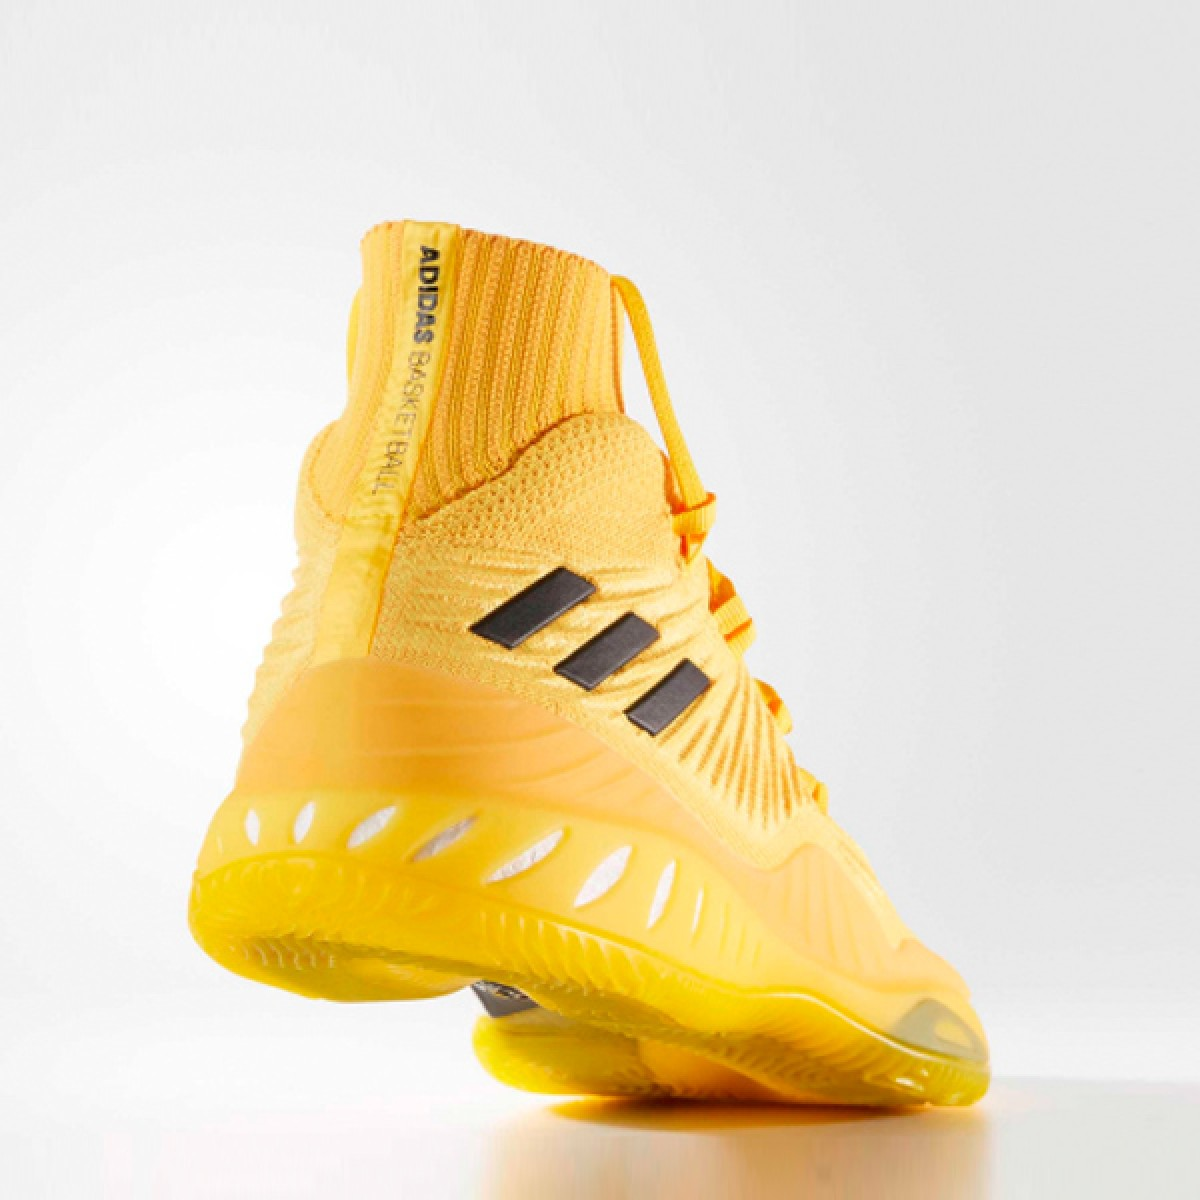 Adidas Crazy Explosive 2017 PK 'Total Yellow' BY4472